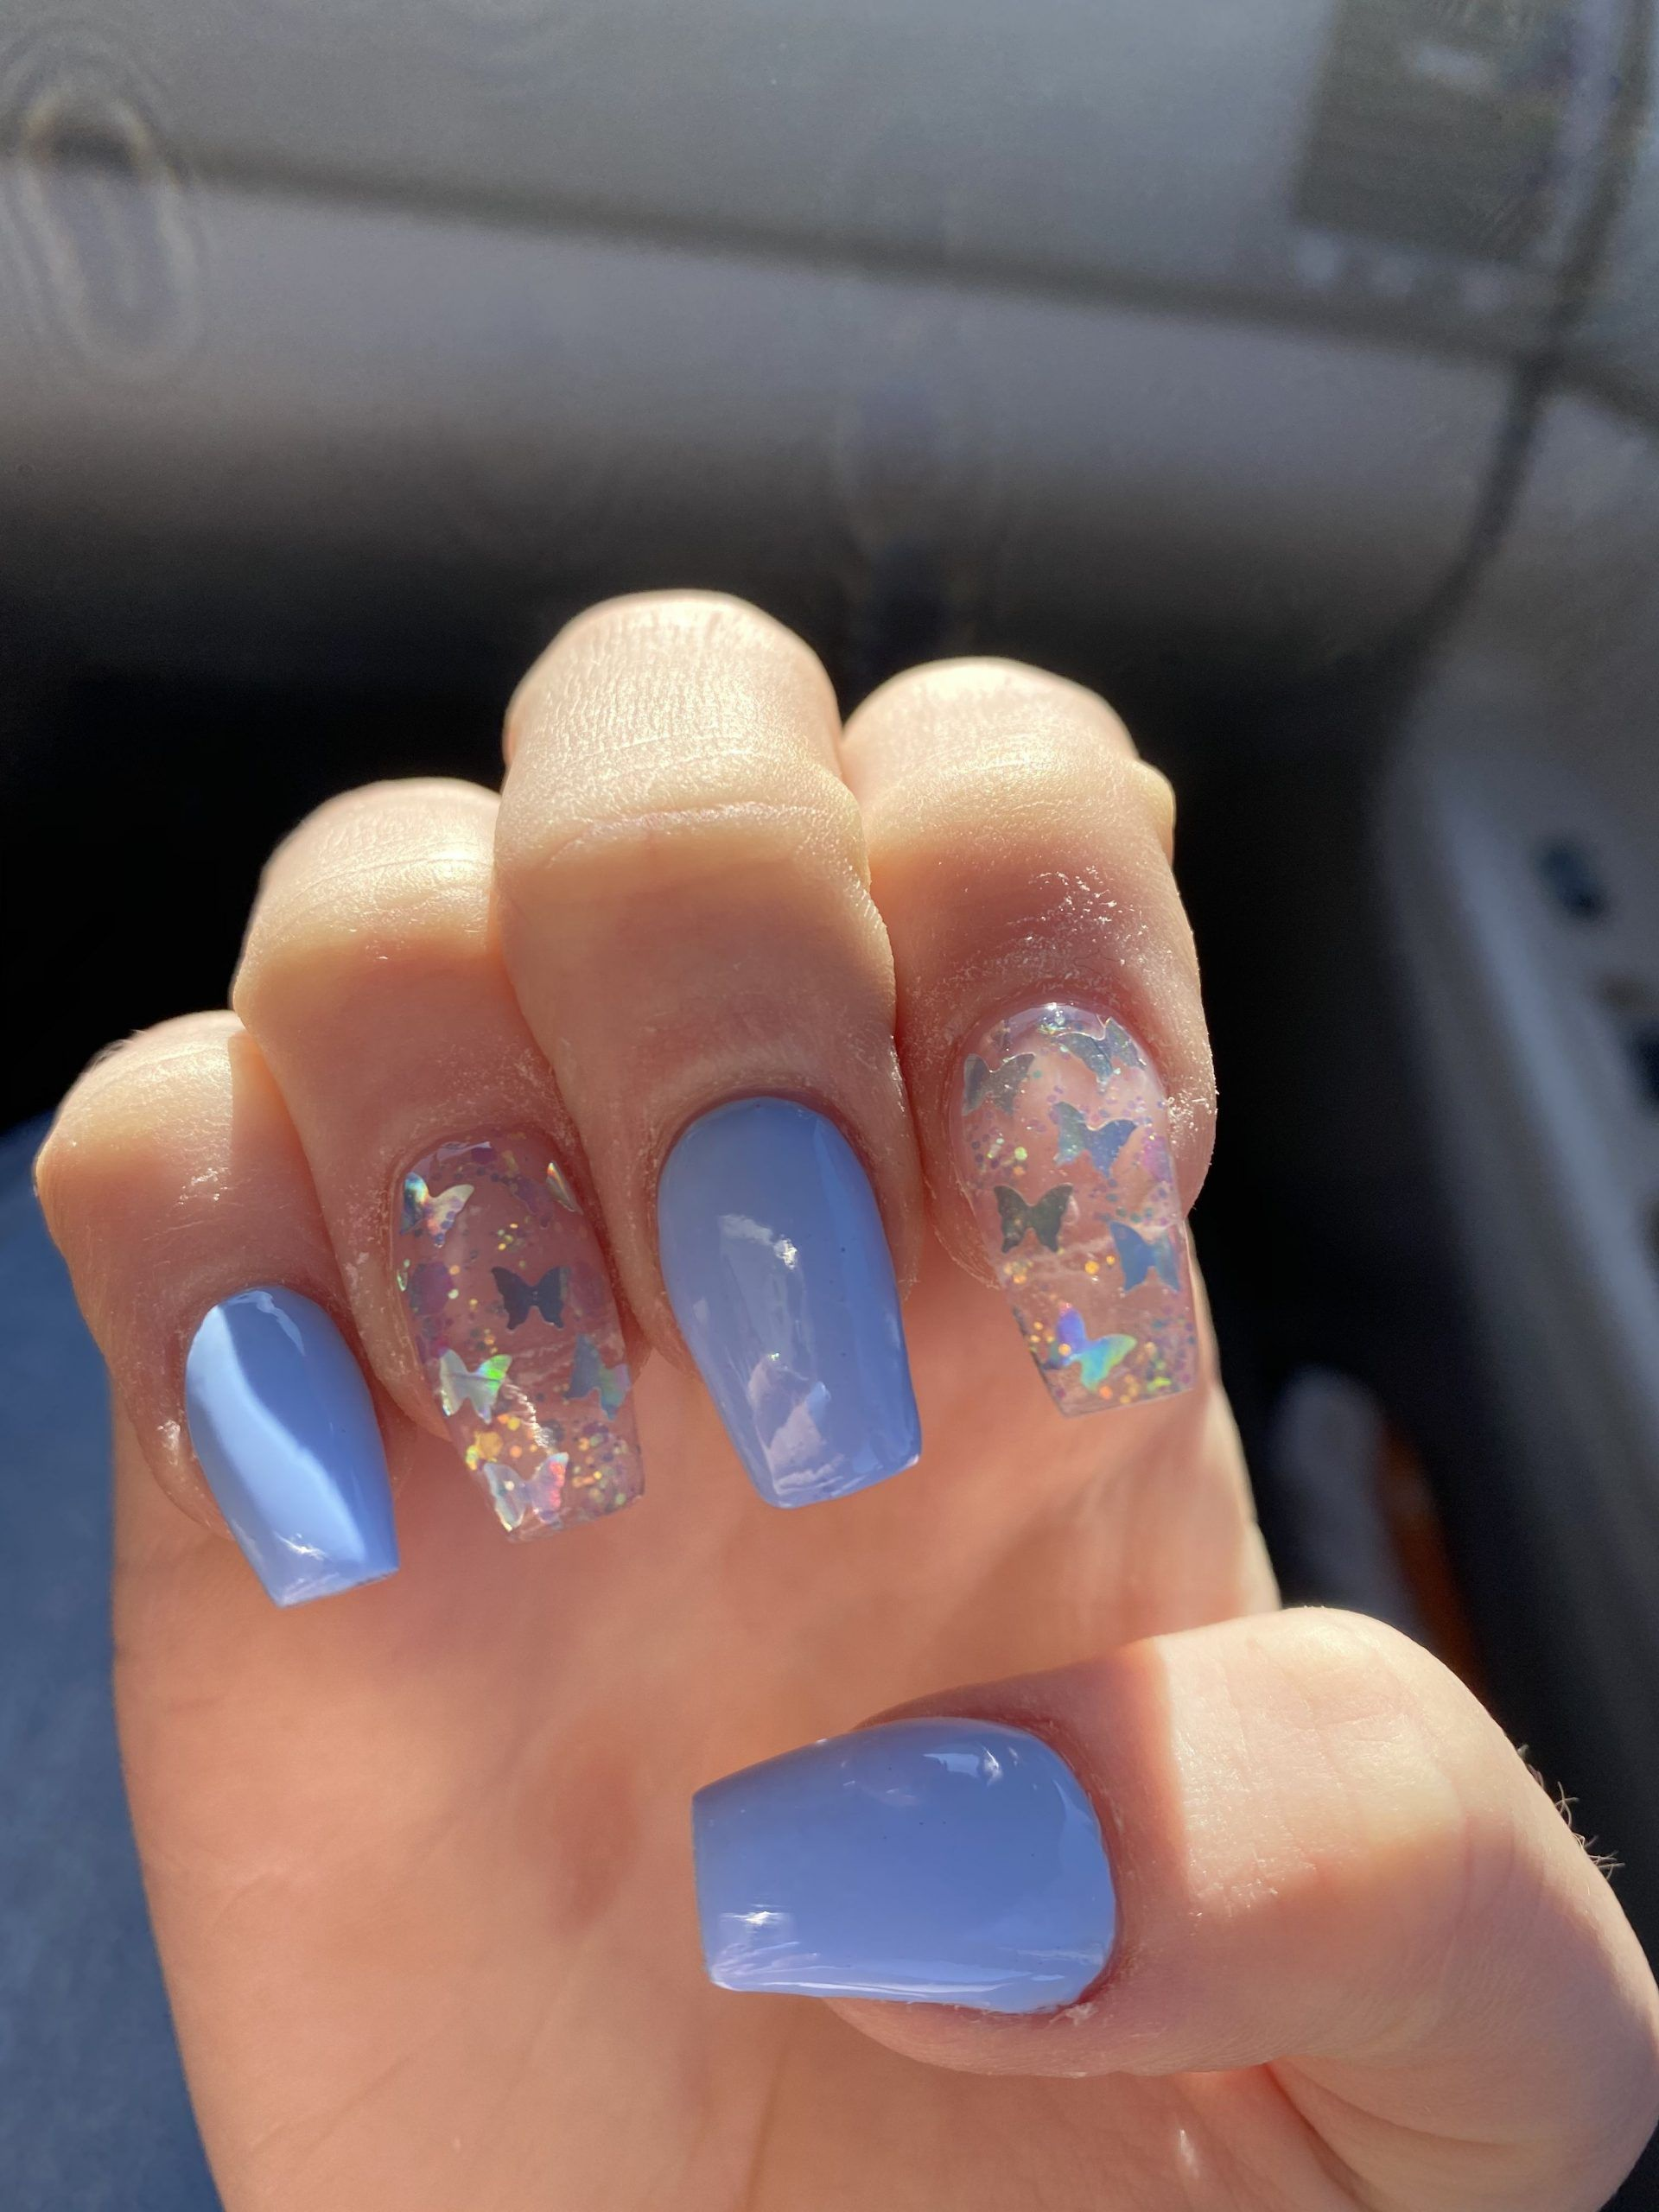 Icy Light Blue Nails 45 Pieces Of Amazing Frozen Nail Art 8 In 2020 Short Square Acrylic Nails Pink Acrylic Nails Acrylic Nails Coffin Short